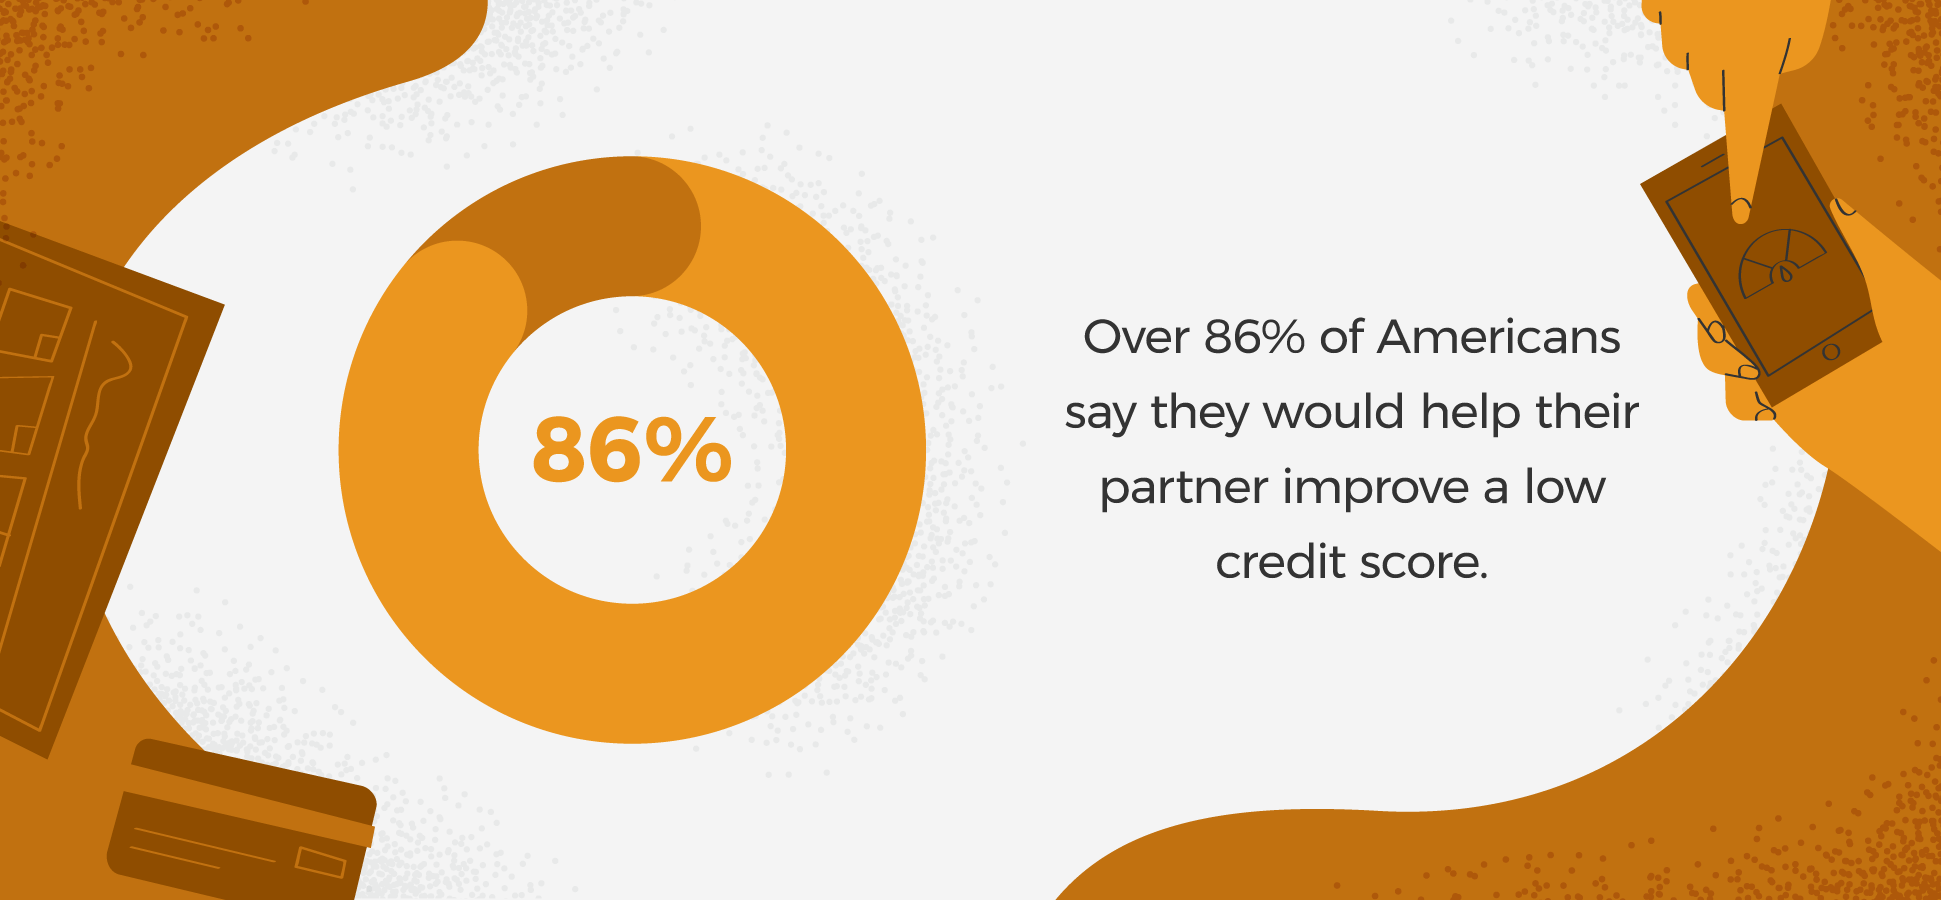 americans-would-help-their-partner-improve-credit-score-tiny